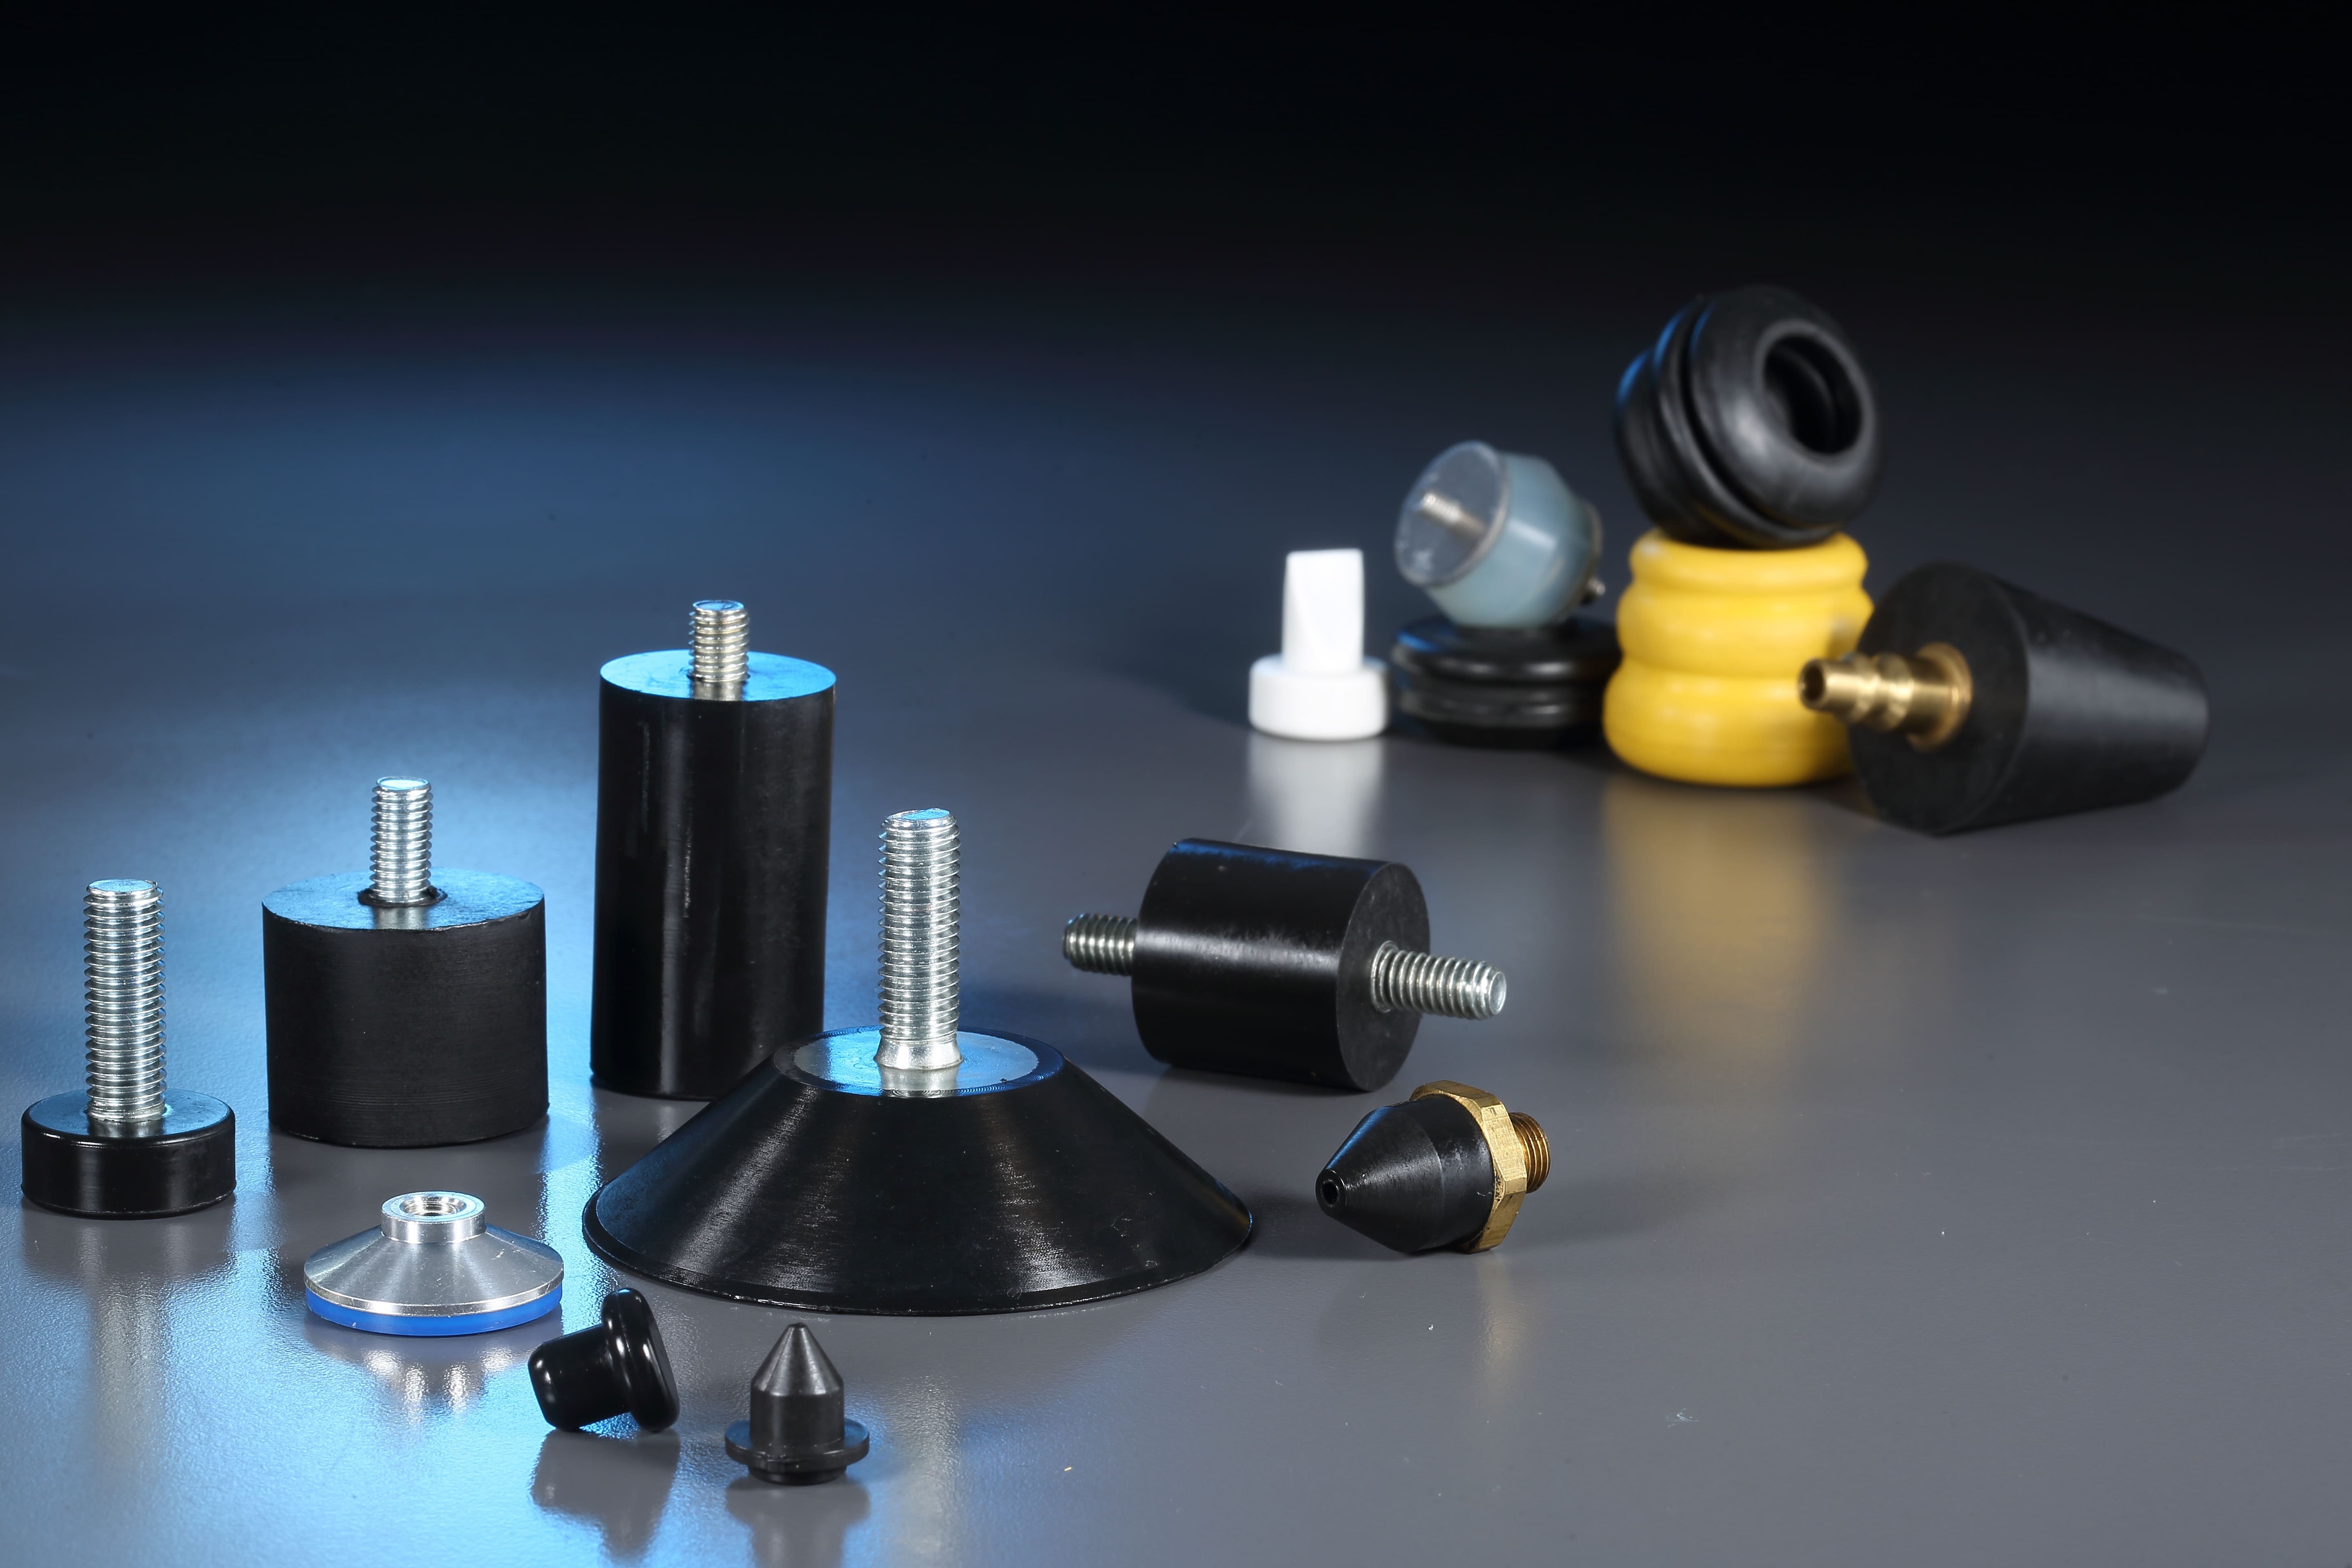 4x4 Pick Up Anti-Vibration rubber,spigot,nozzle for Rubber, Plastic Parts made by Yee Ming Ying Co., LTD. 昱銘穎有限公司 - MatchSupplier.com